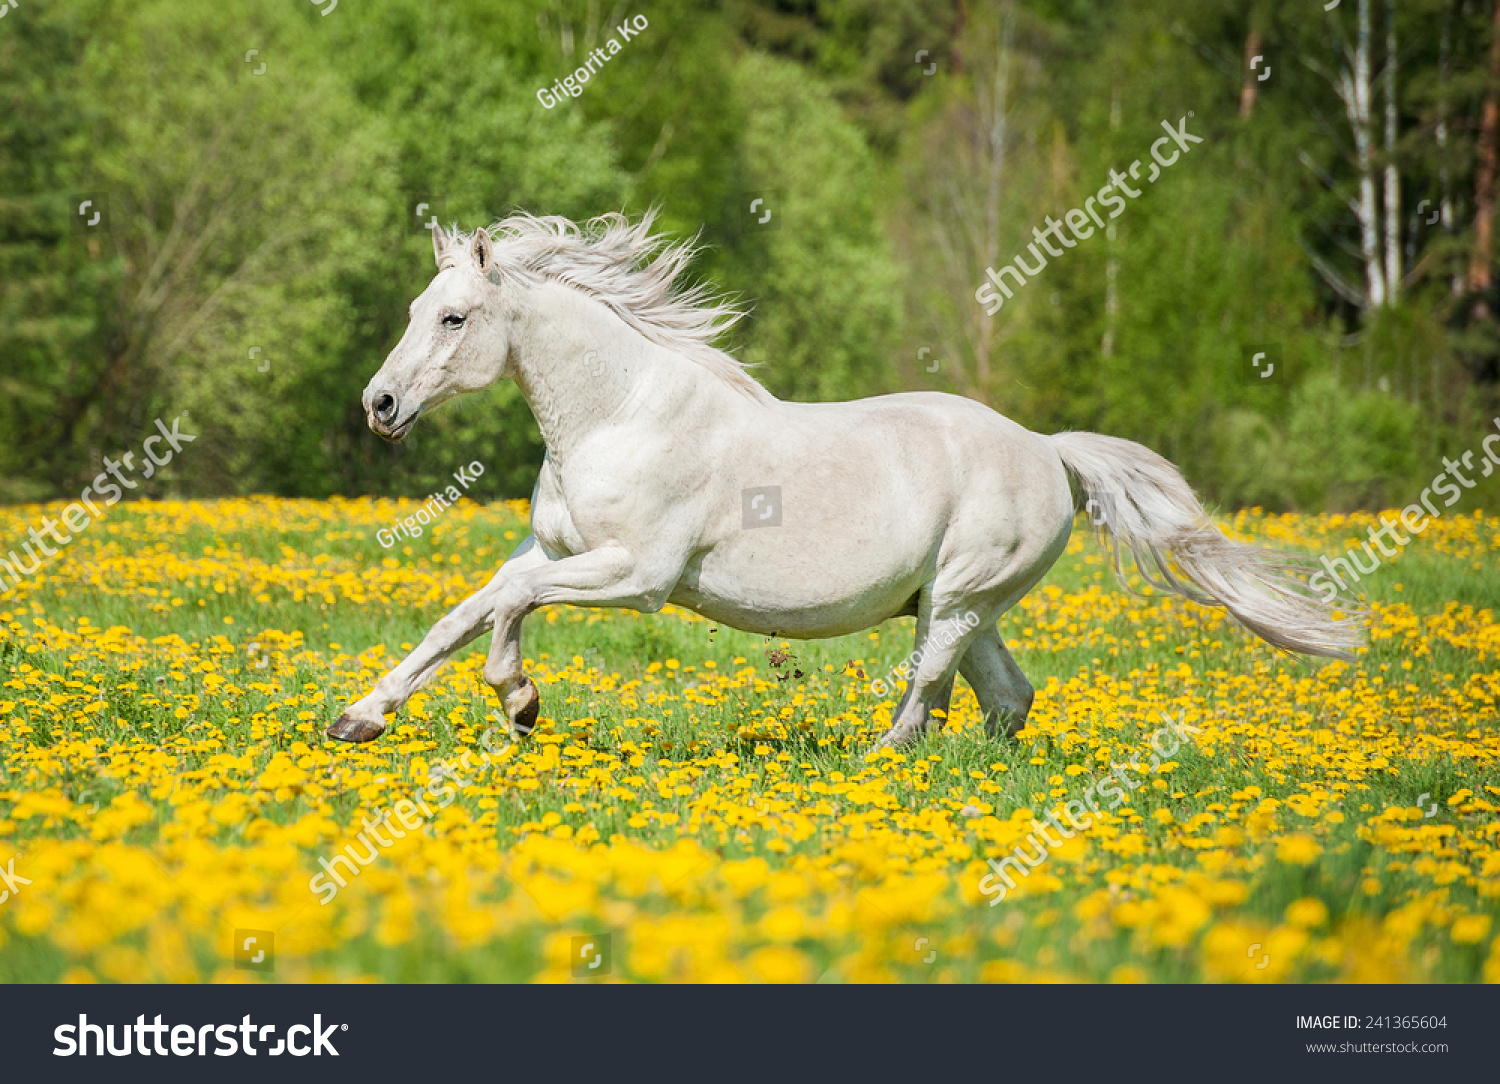 Beautiful White Horse Running